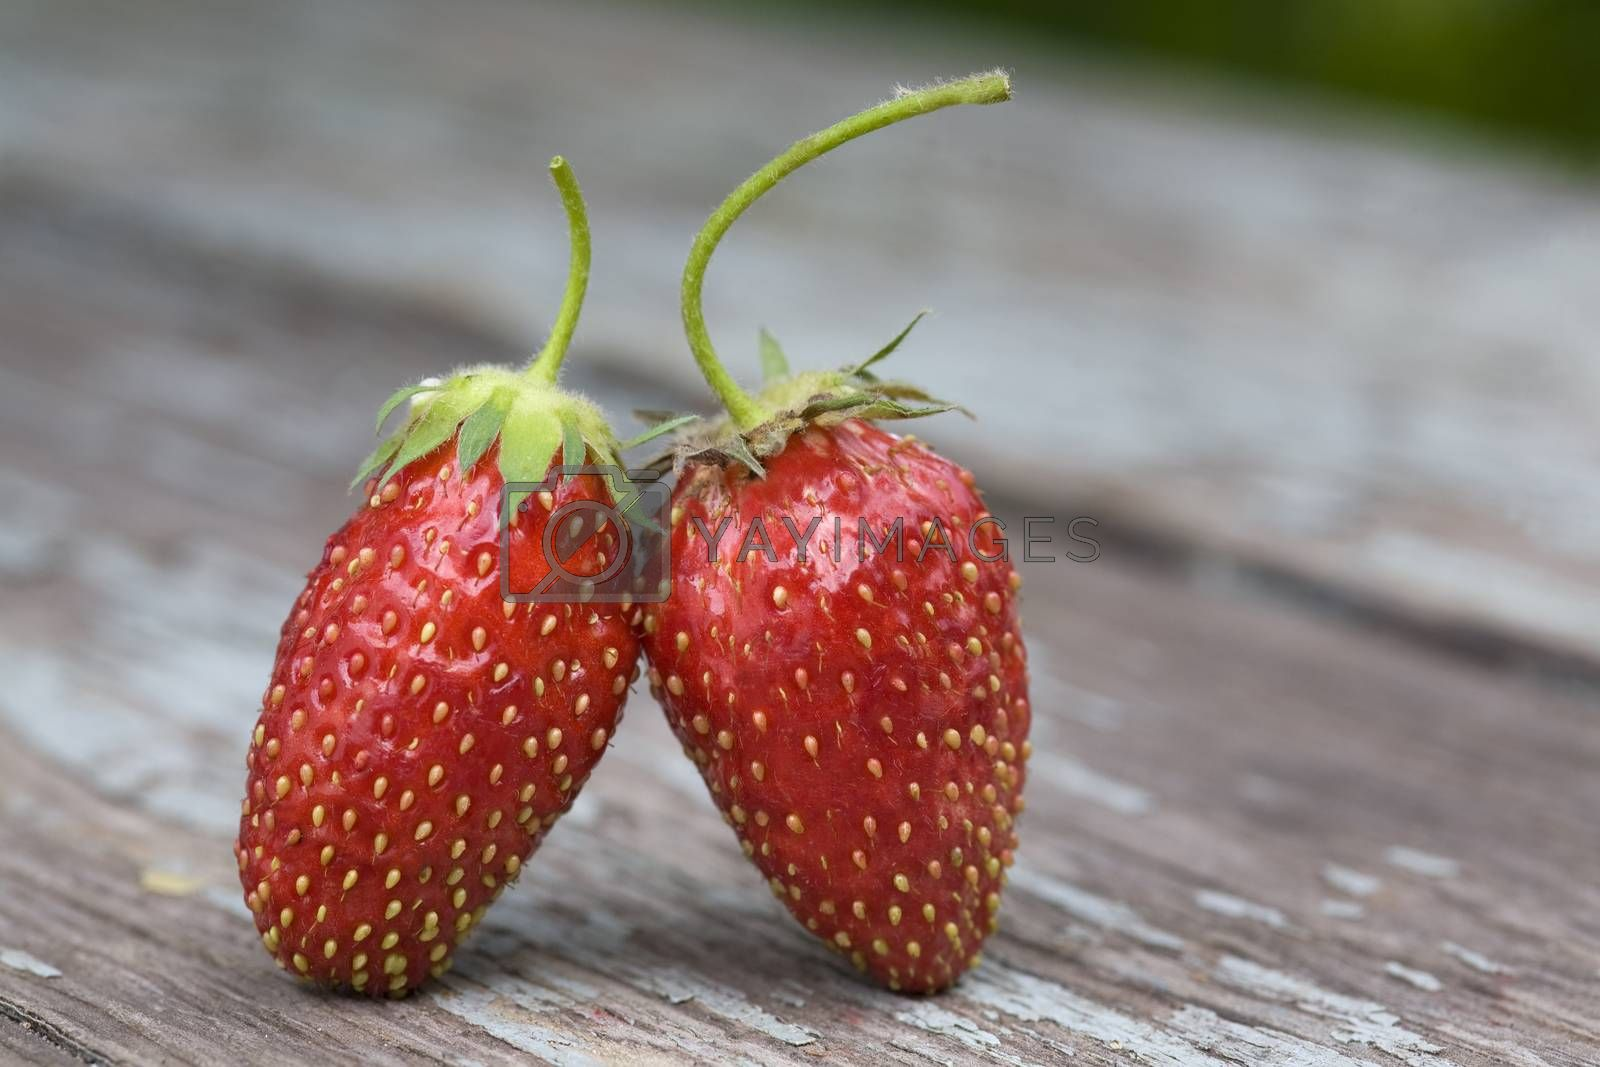 Royalty free image of two strawberries by phortcach